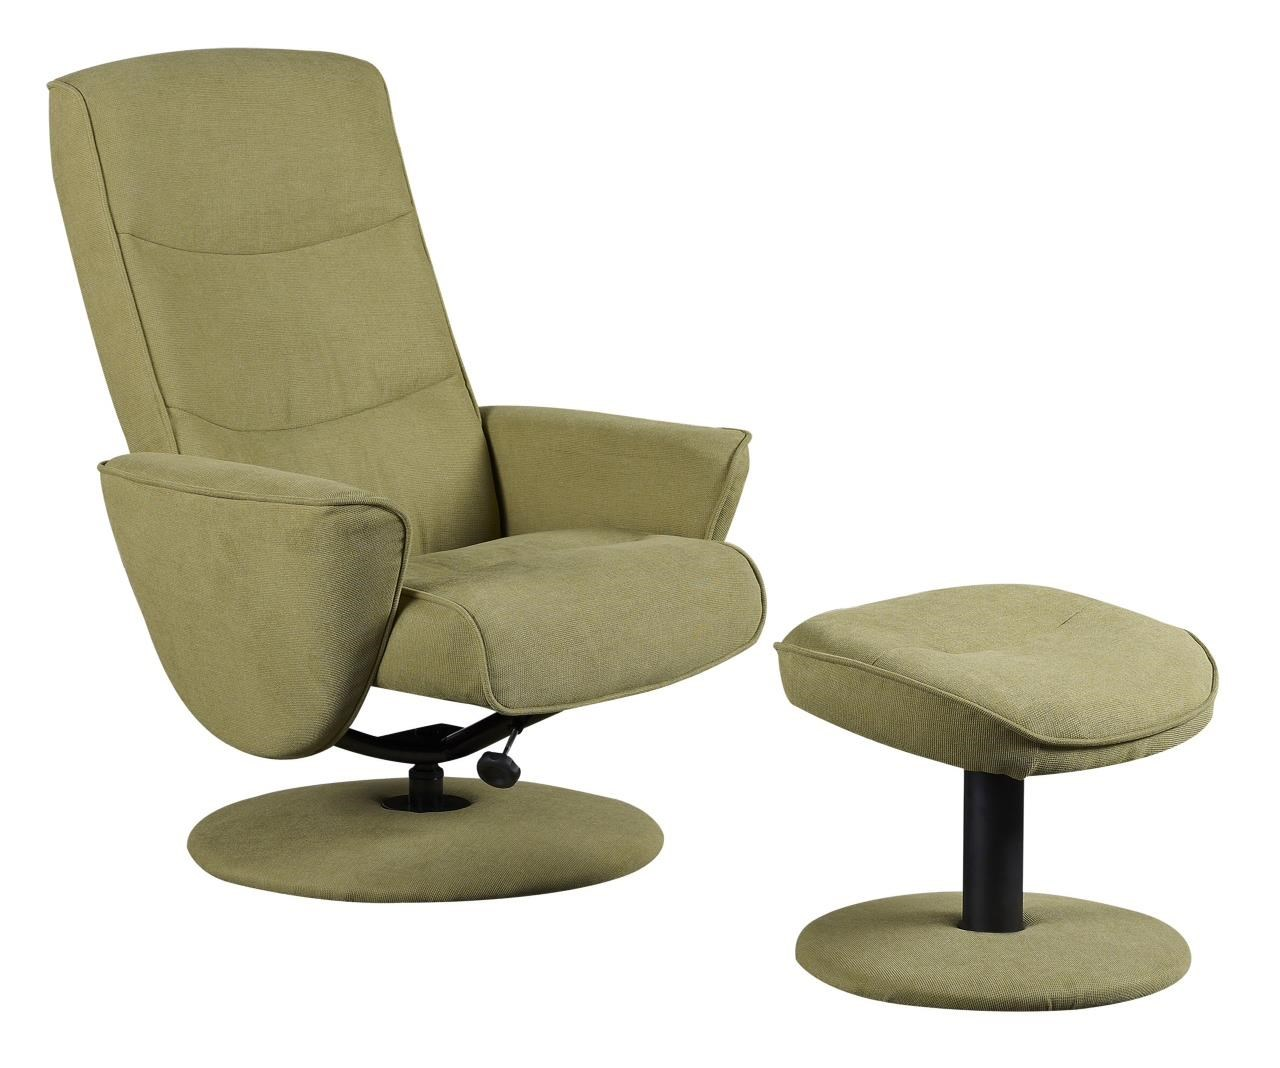 Mac Motion Chairs Mac Motion ChairsSwivel Recliner And Ottoman Set ...